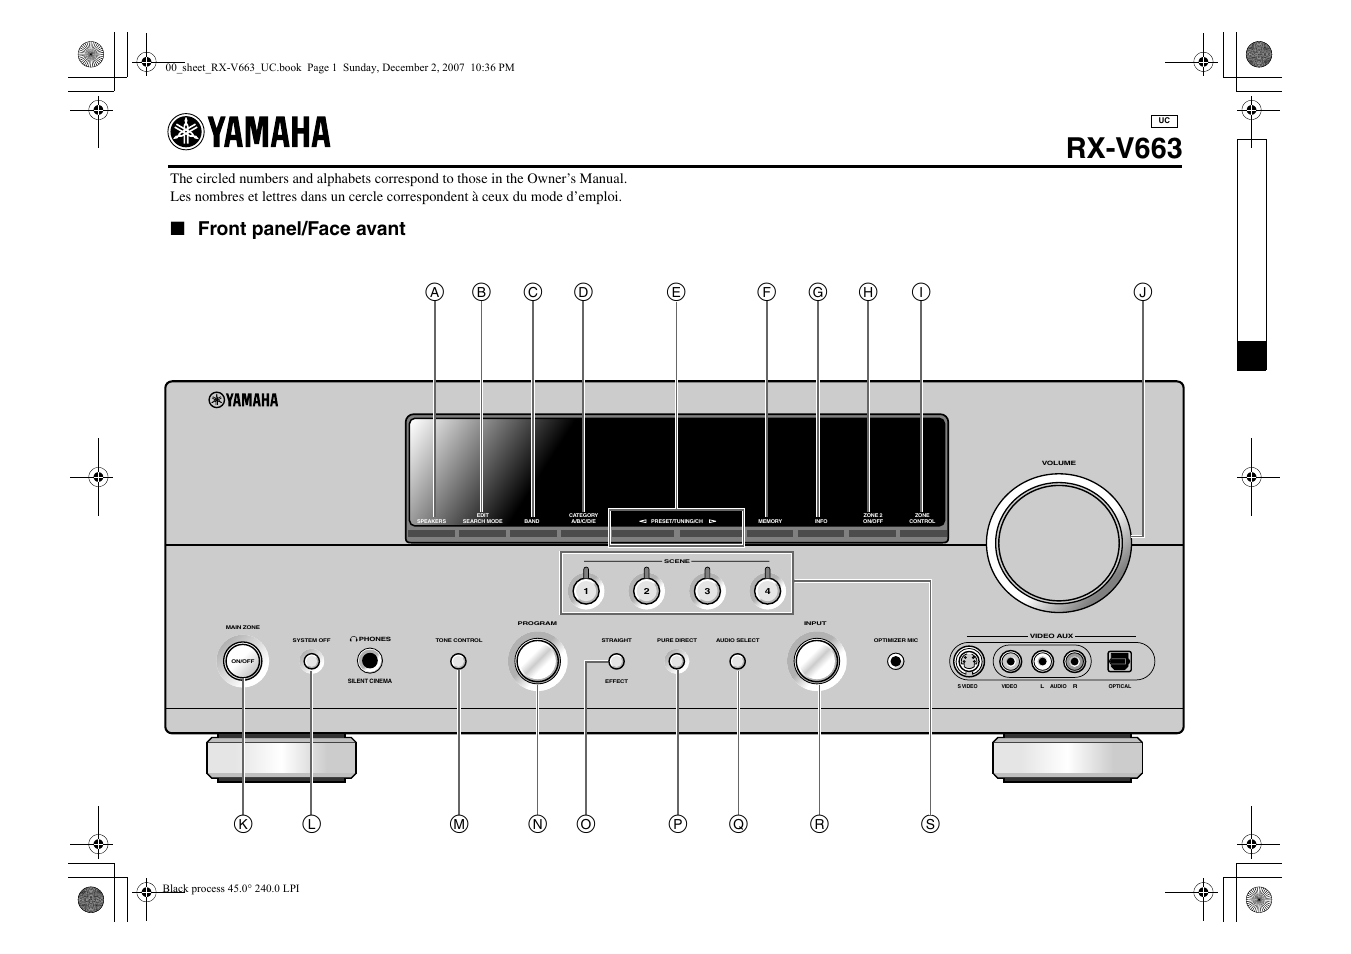 control diagram front panel rx v663 yamaha rx v663 user manual rh manualsdir com Yamaha RV 663 Manual yamaha rx v663 service manual